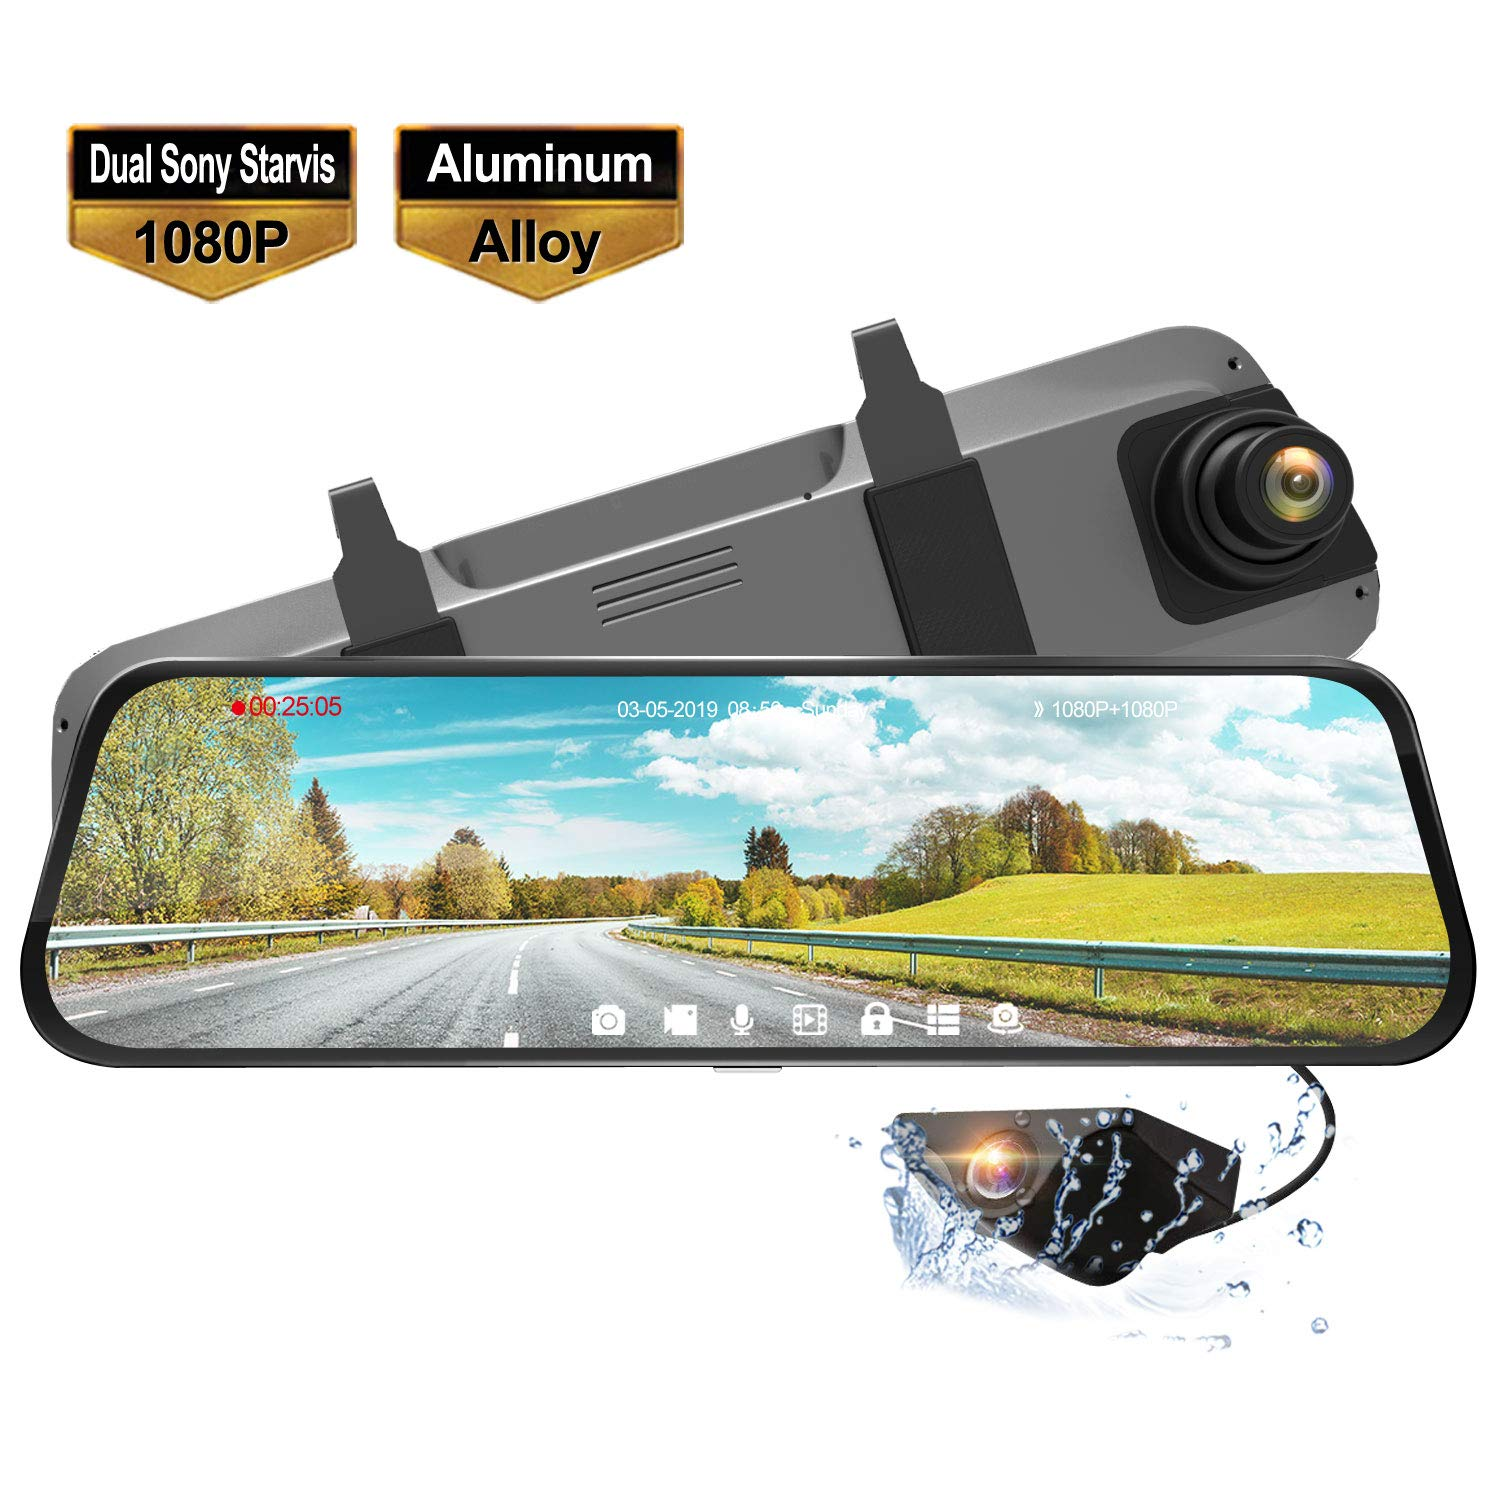 Reversing Assistance Camera Mirror Dash Cam for Cars Waterproof Backup Camera Rear View Full Touch Screen Mirror Camera Enhanced Night Vision with Sony Starvis Sensor